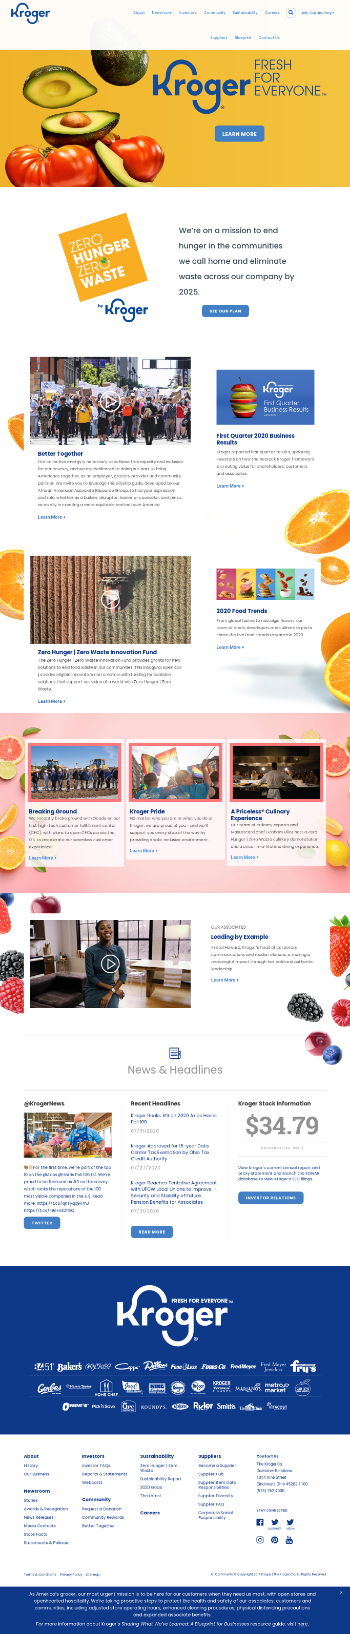 The Kroger Co. Website Screenshot